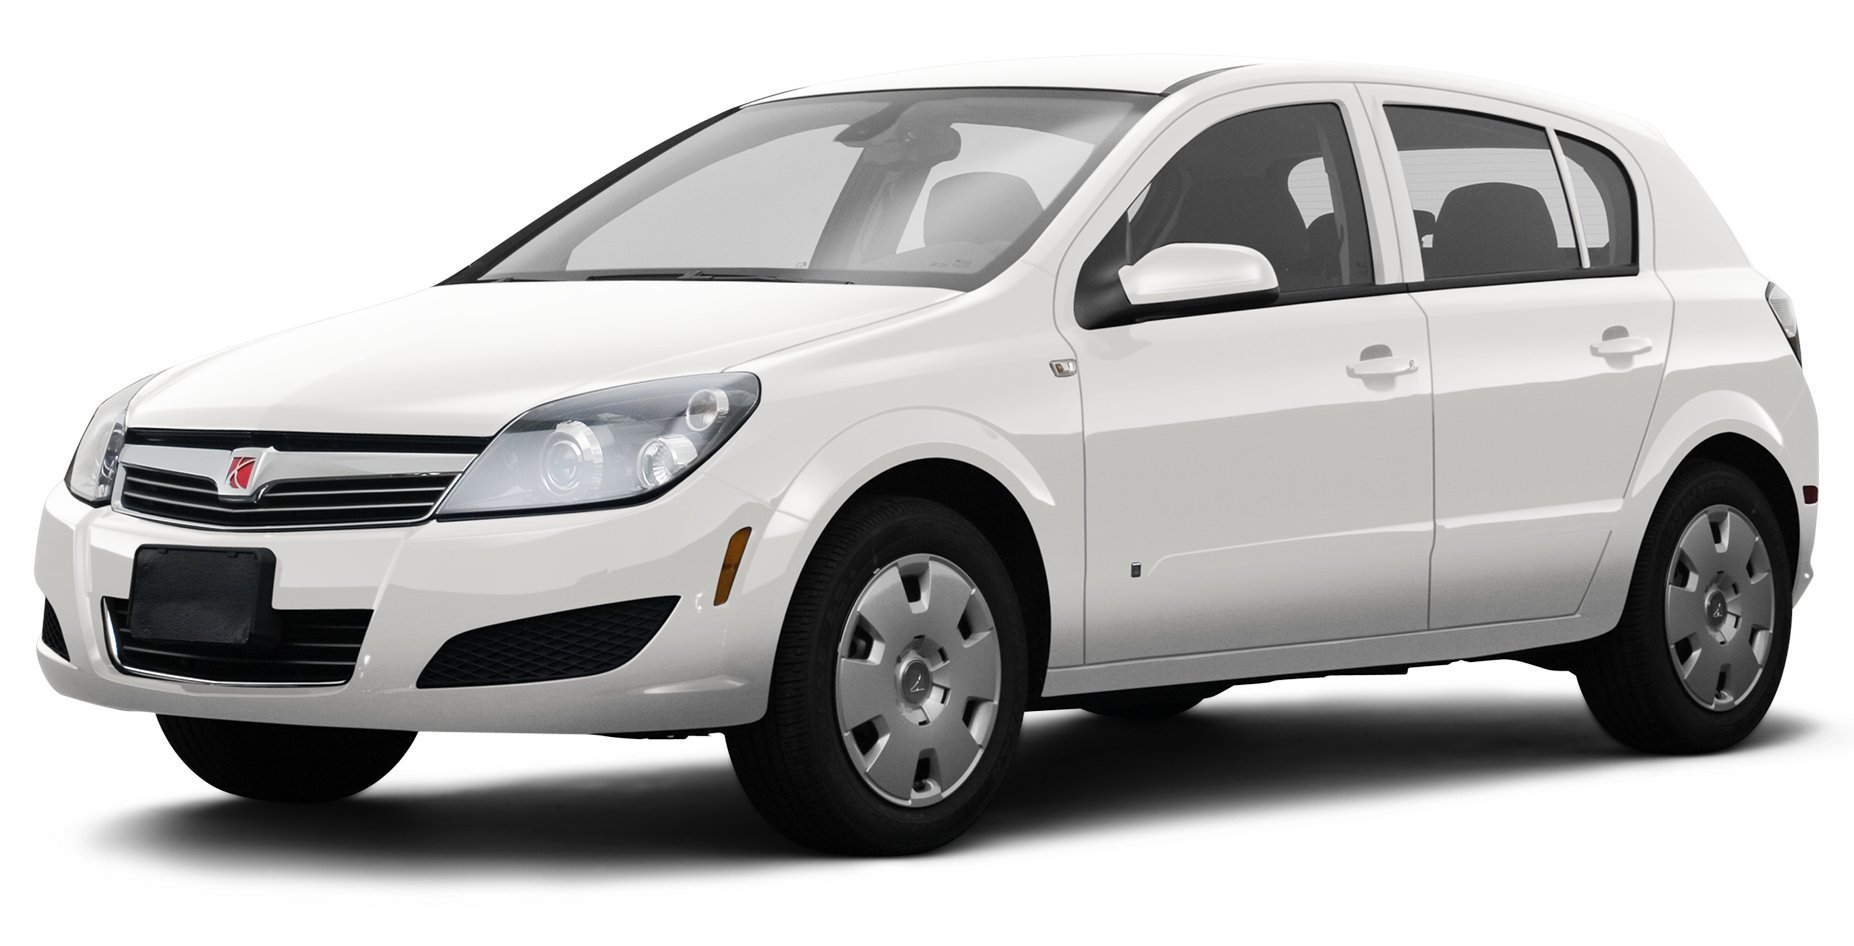 amazon com 2008 saturn astra reviews images and specs vehicles rh amazon com